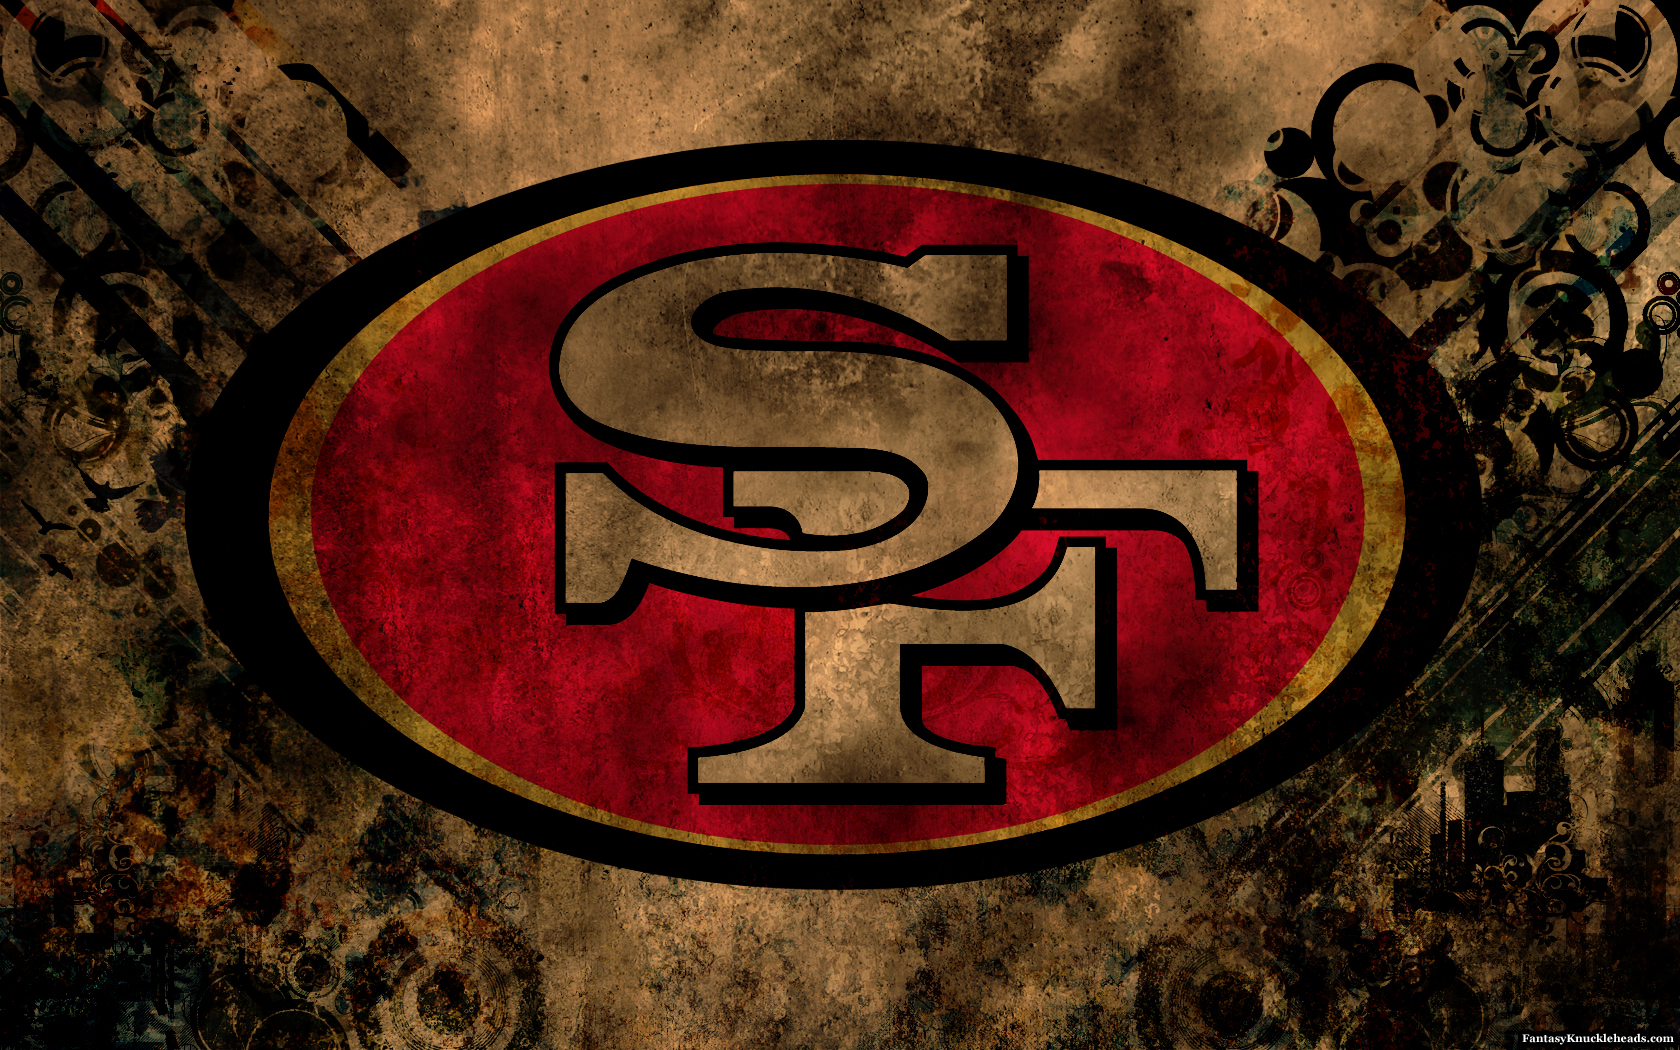 San Francisco 49ers wallpaper HD images San Francisco 49ers 1680x1050